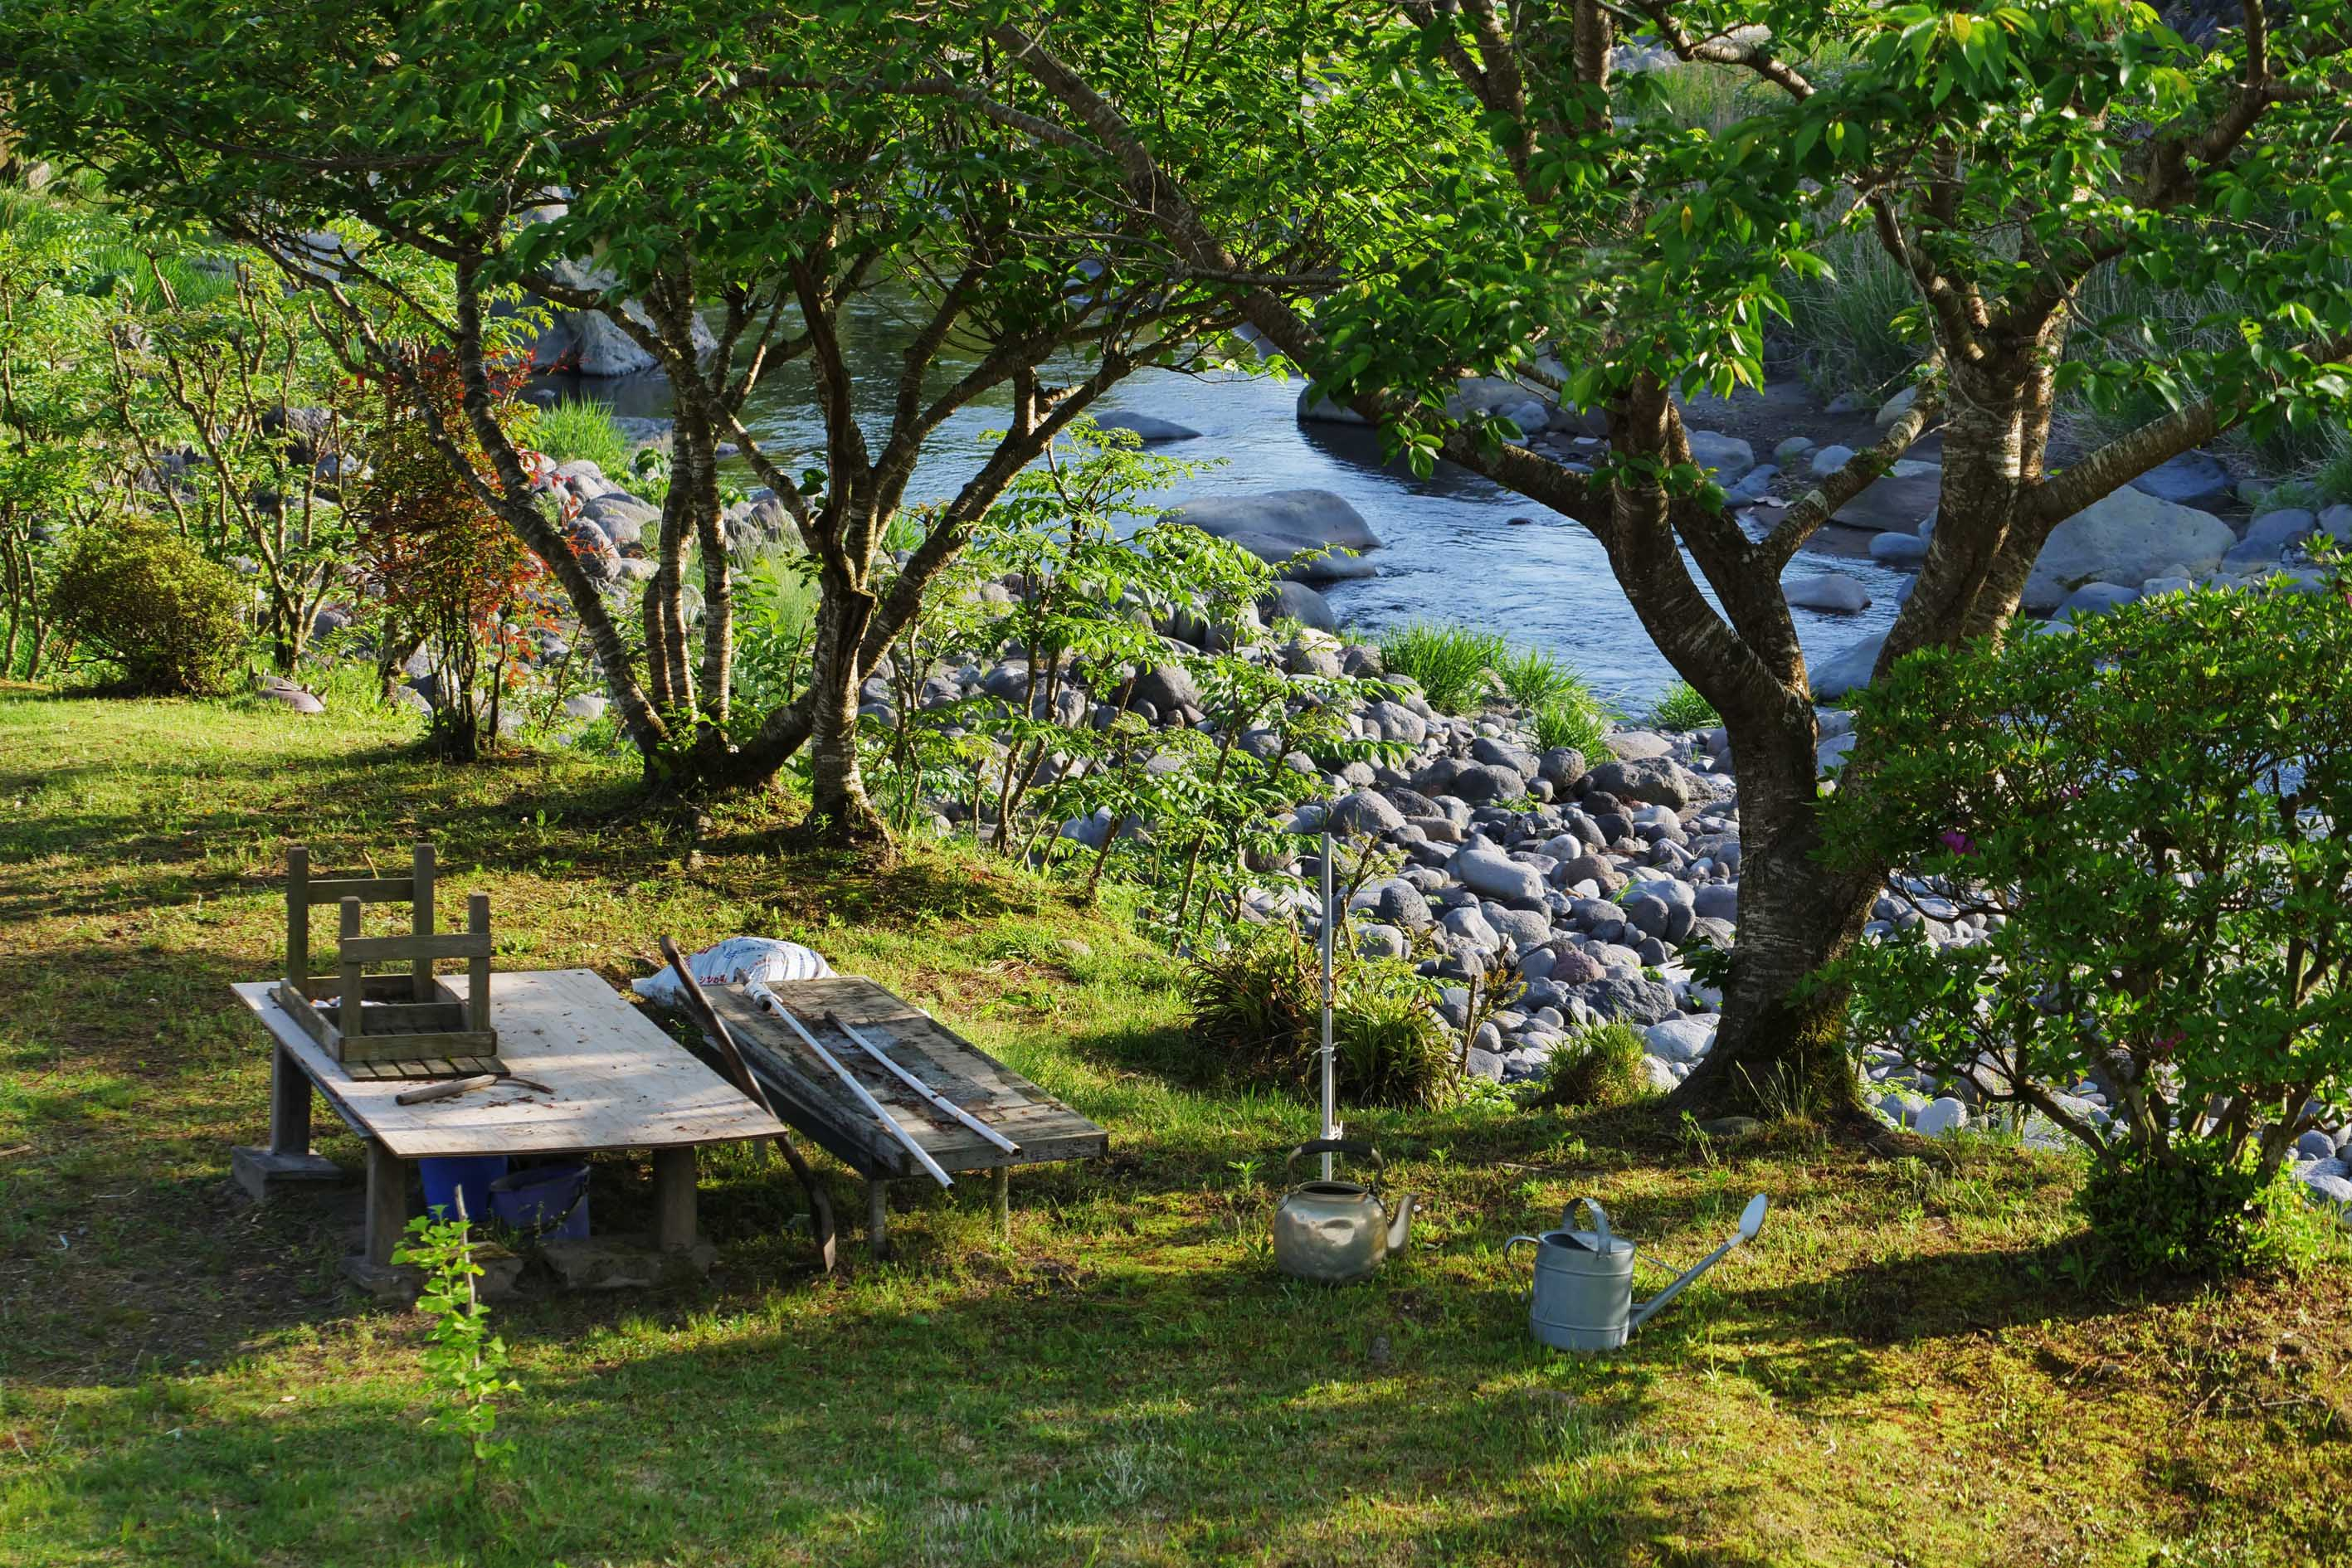 NARIEDA Shinichiro's garden at the riverside of a small river in Kirishima